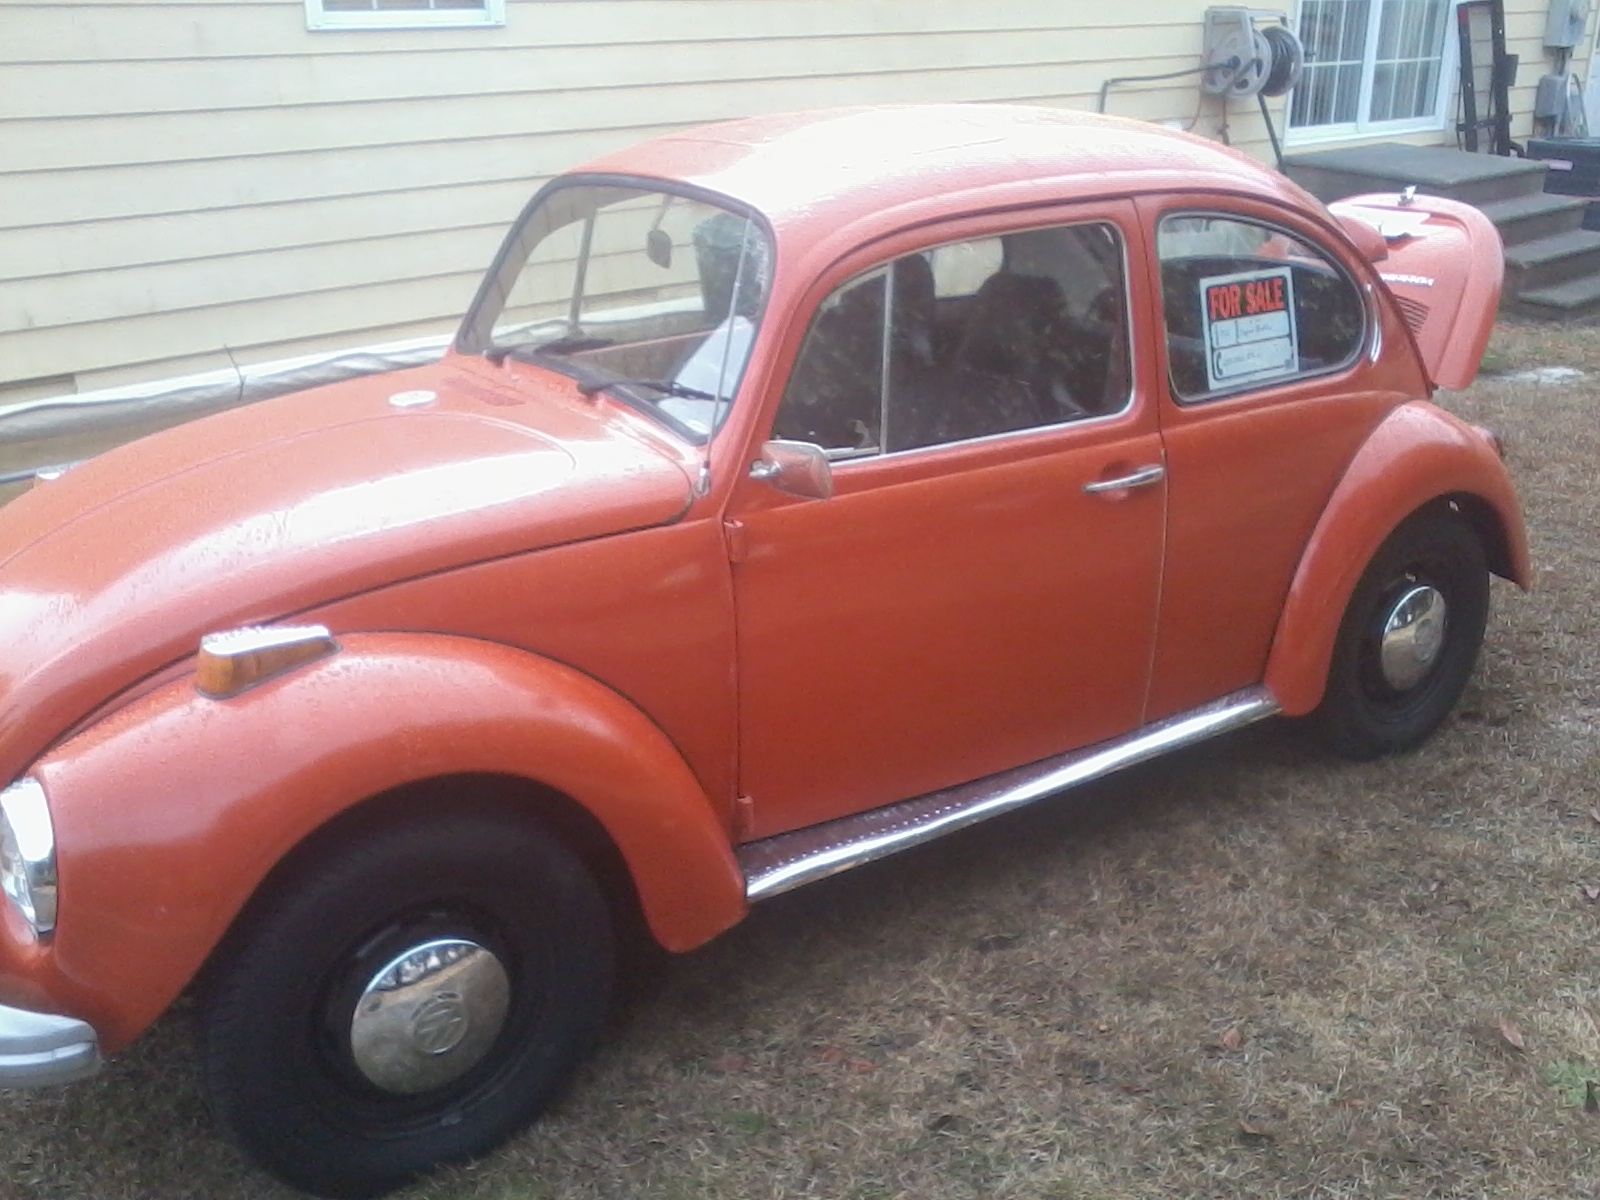 classic early production the o announced pink sedan convertible editions inspired special vw inc next year all dune volkswagen go america of beetle by which today sale will version baja on for and